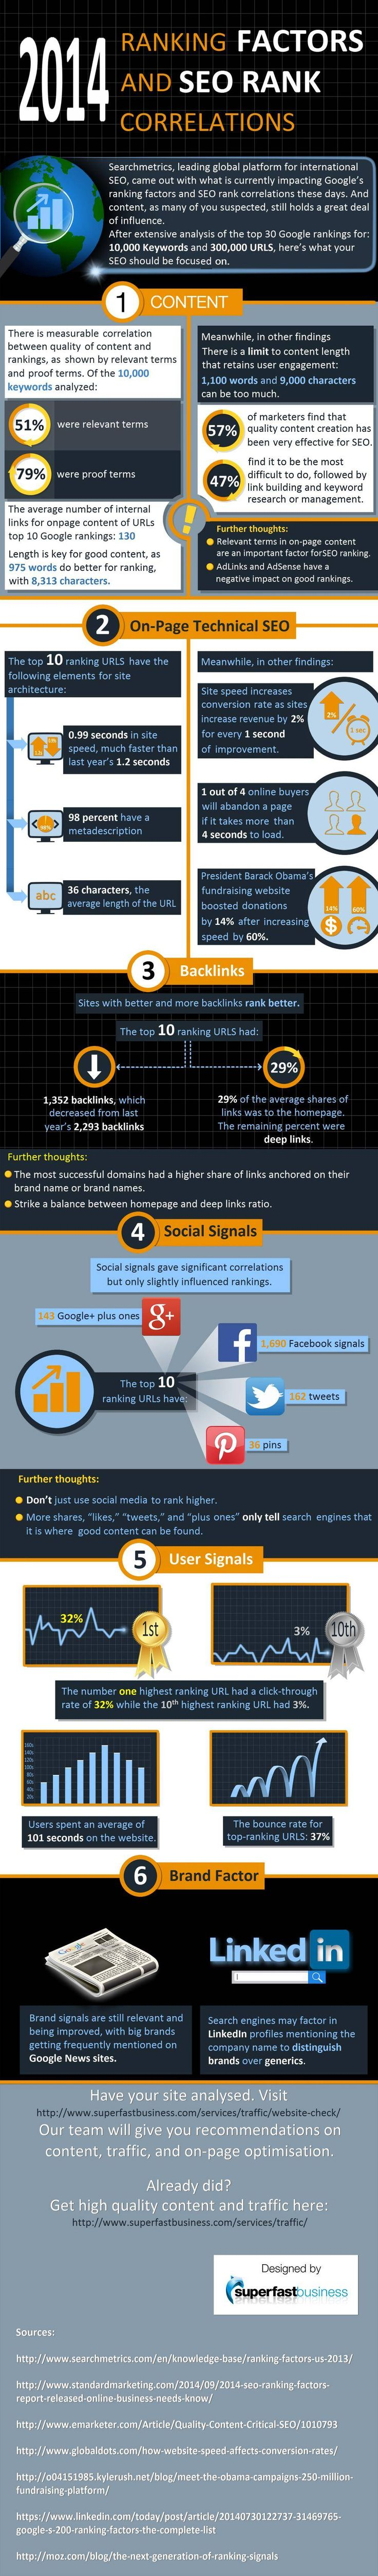 251 best Info Graphics images on Pinterest